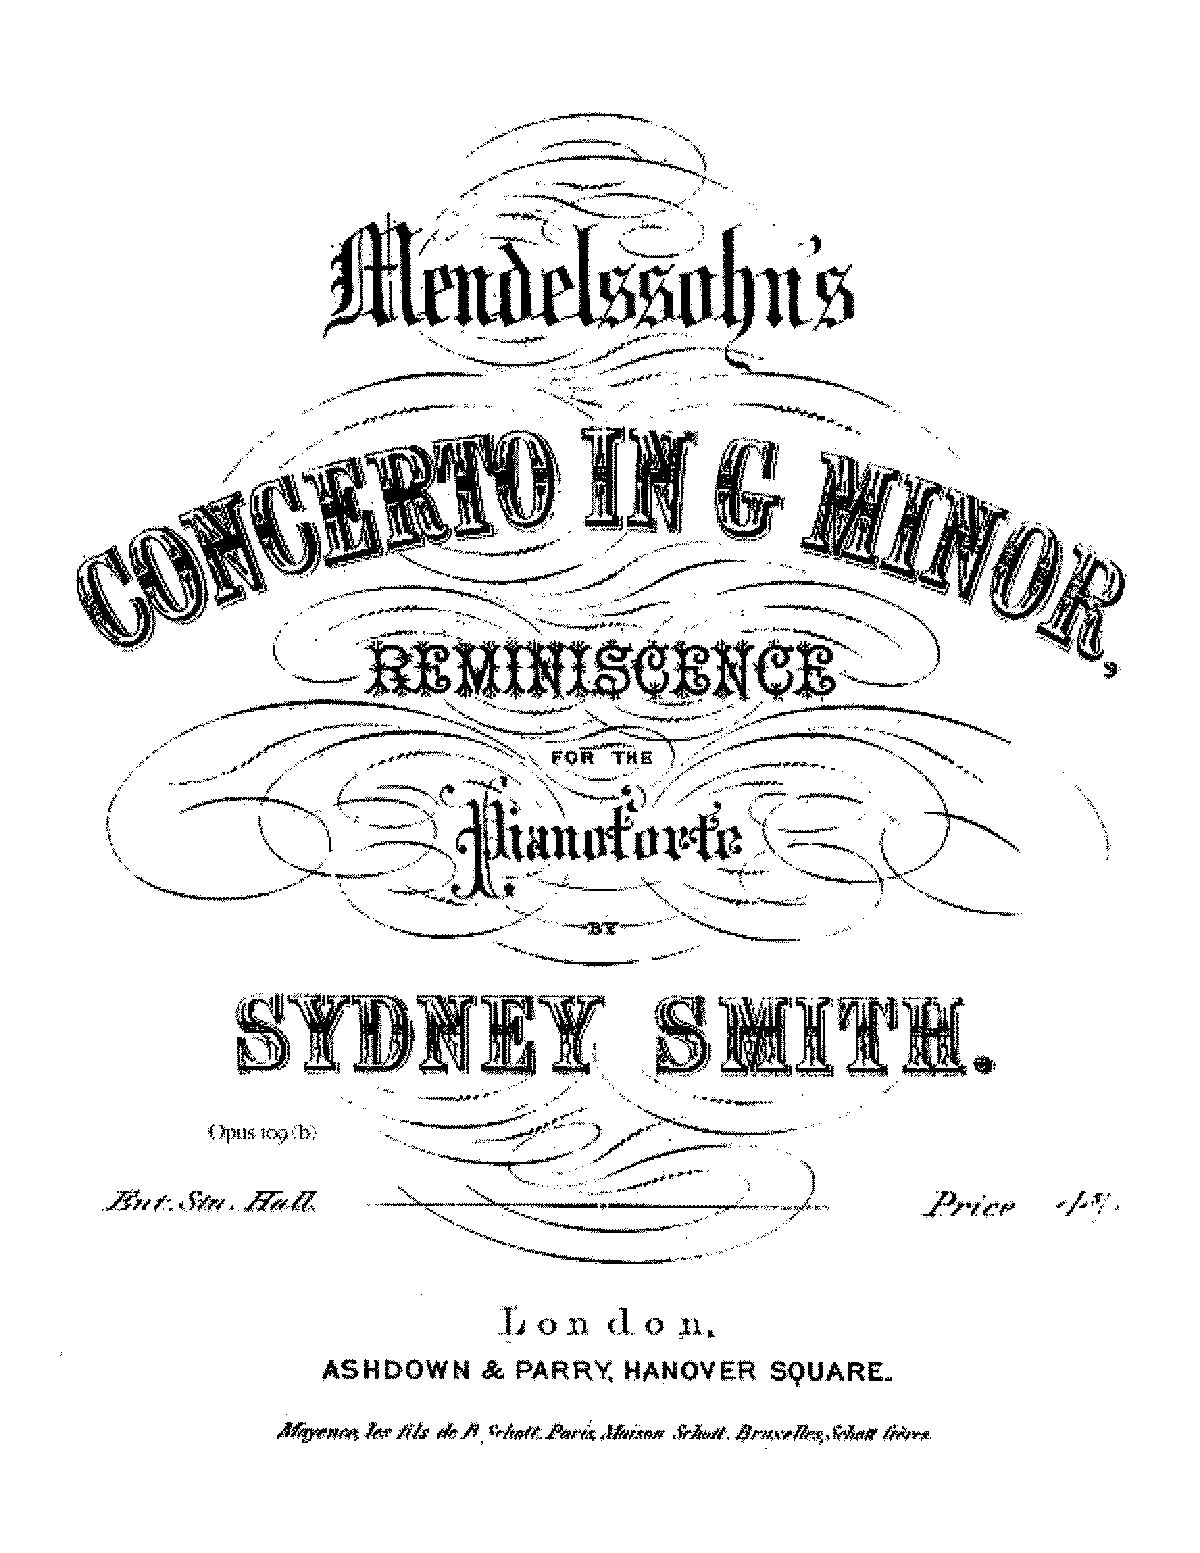 PMLP122961-Smith, Sydney. Mendelssohn's Concerto in G minor, Reminiscence.pdf